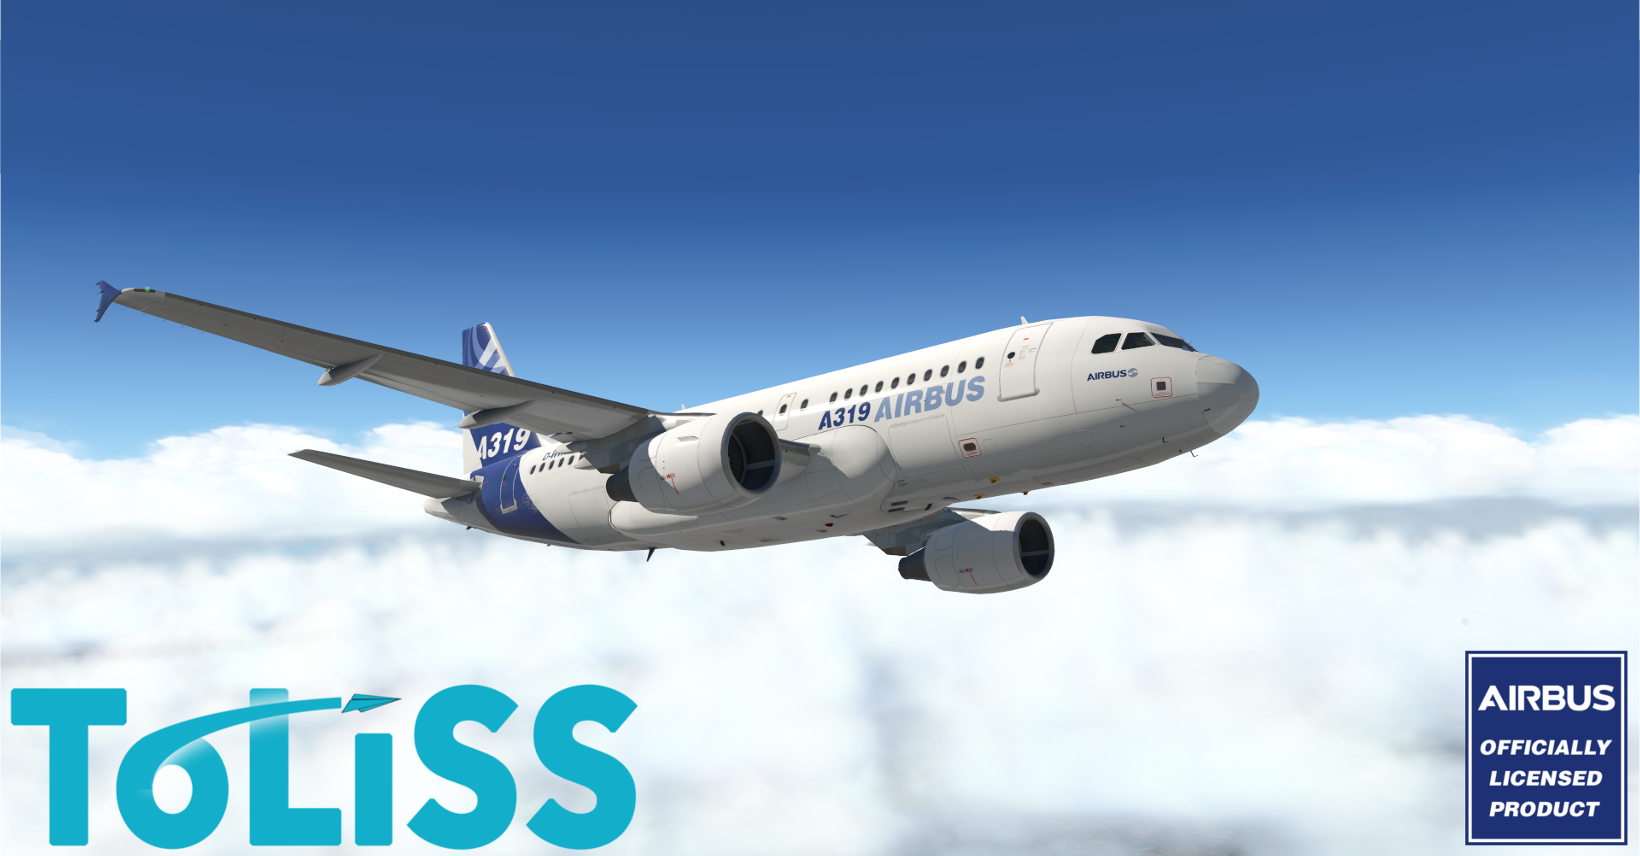 TOLISS INC - A319 X-PLANE 10/11, OFFICIALLY LICENSED BY AIRBUS